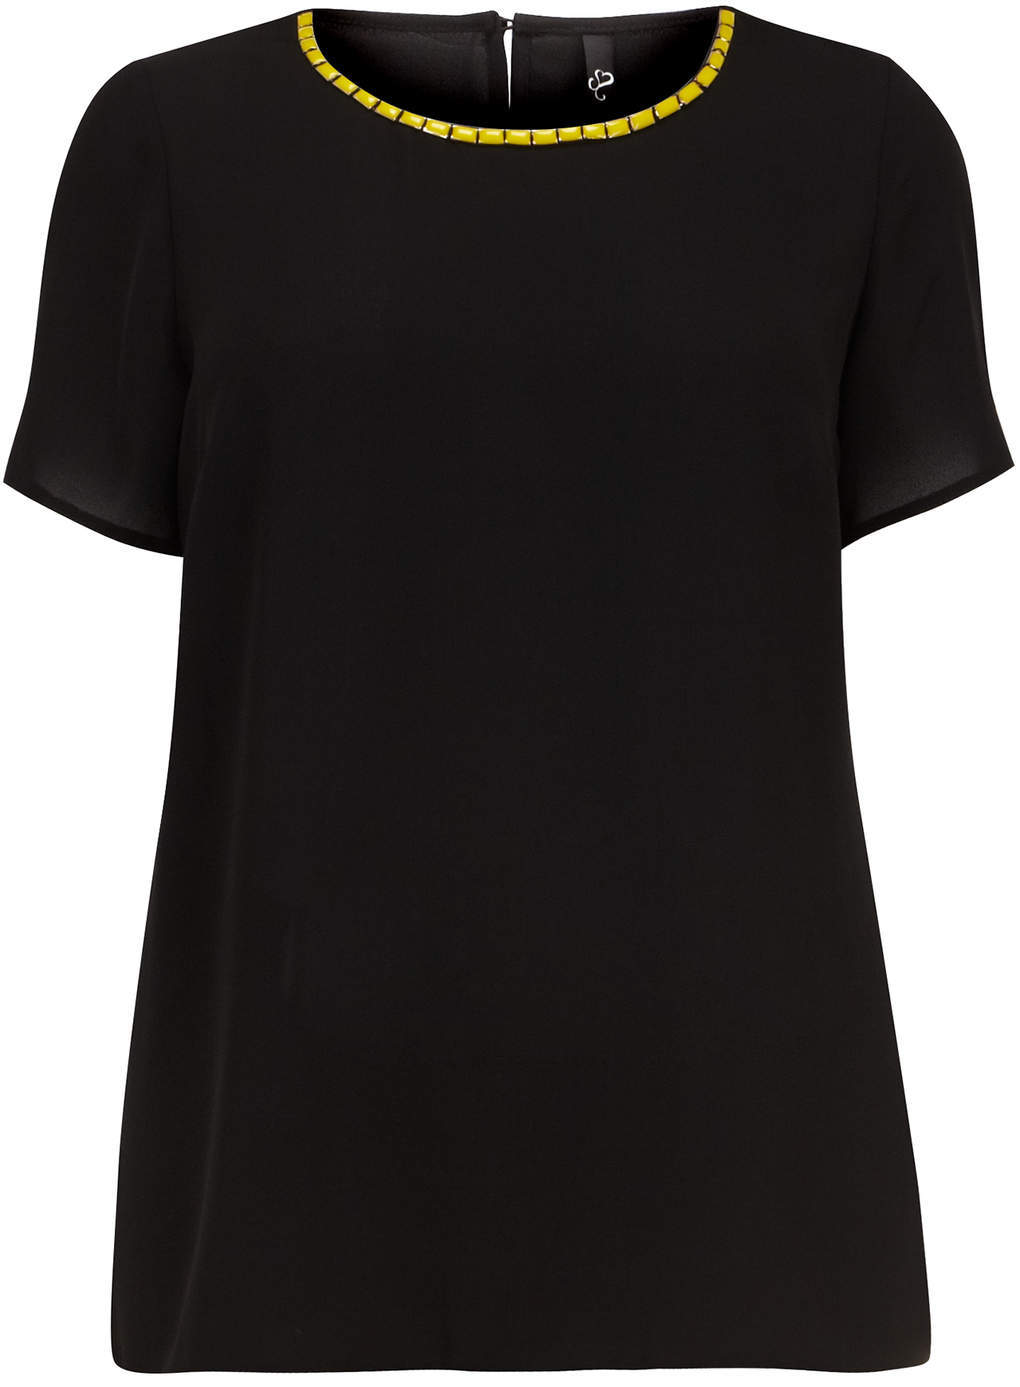 Black Enamel Neck Trim Top - neckline: round neck; pattern: plain; length: below the bottom; style: t-shirt; secondary colour: yellow; predominant colour: black; occasions: casual, evening, creative work; fibres: polyester/polyamide - 100%; fit: straight cut; sleeve length: short sleeve; sleeve style: standard; texture group: crepes; pattern type: fabric; embellishment: jewels/stone; trends: hot brights; season: s/s 2014